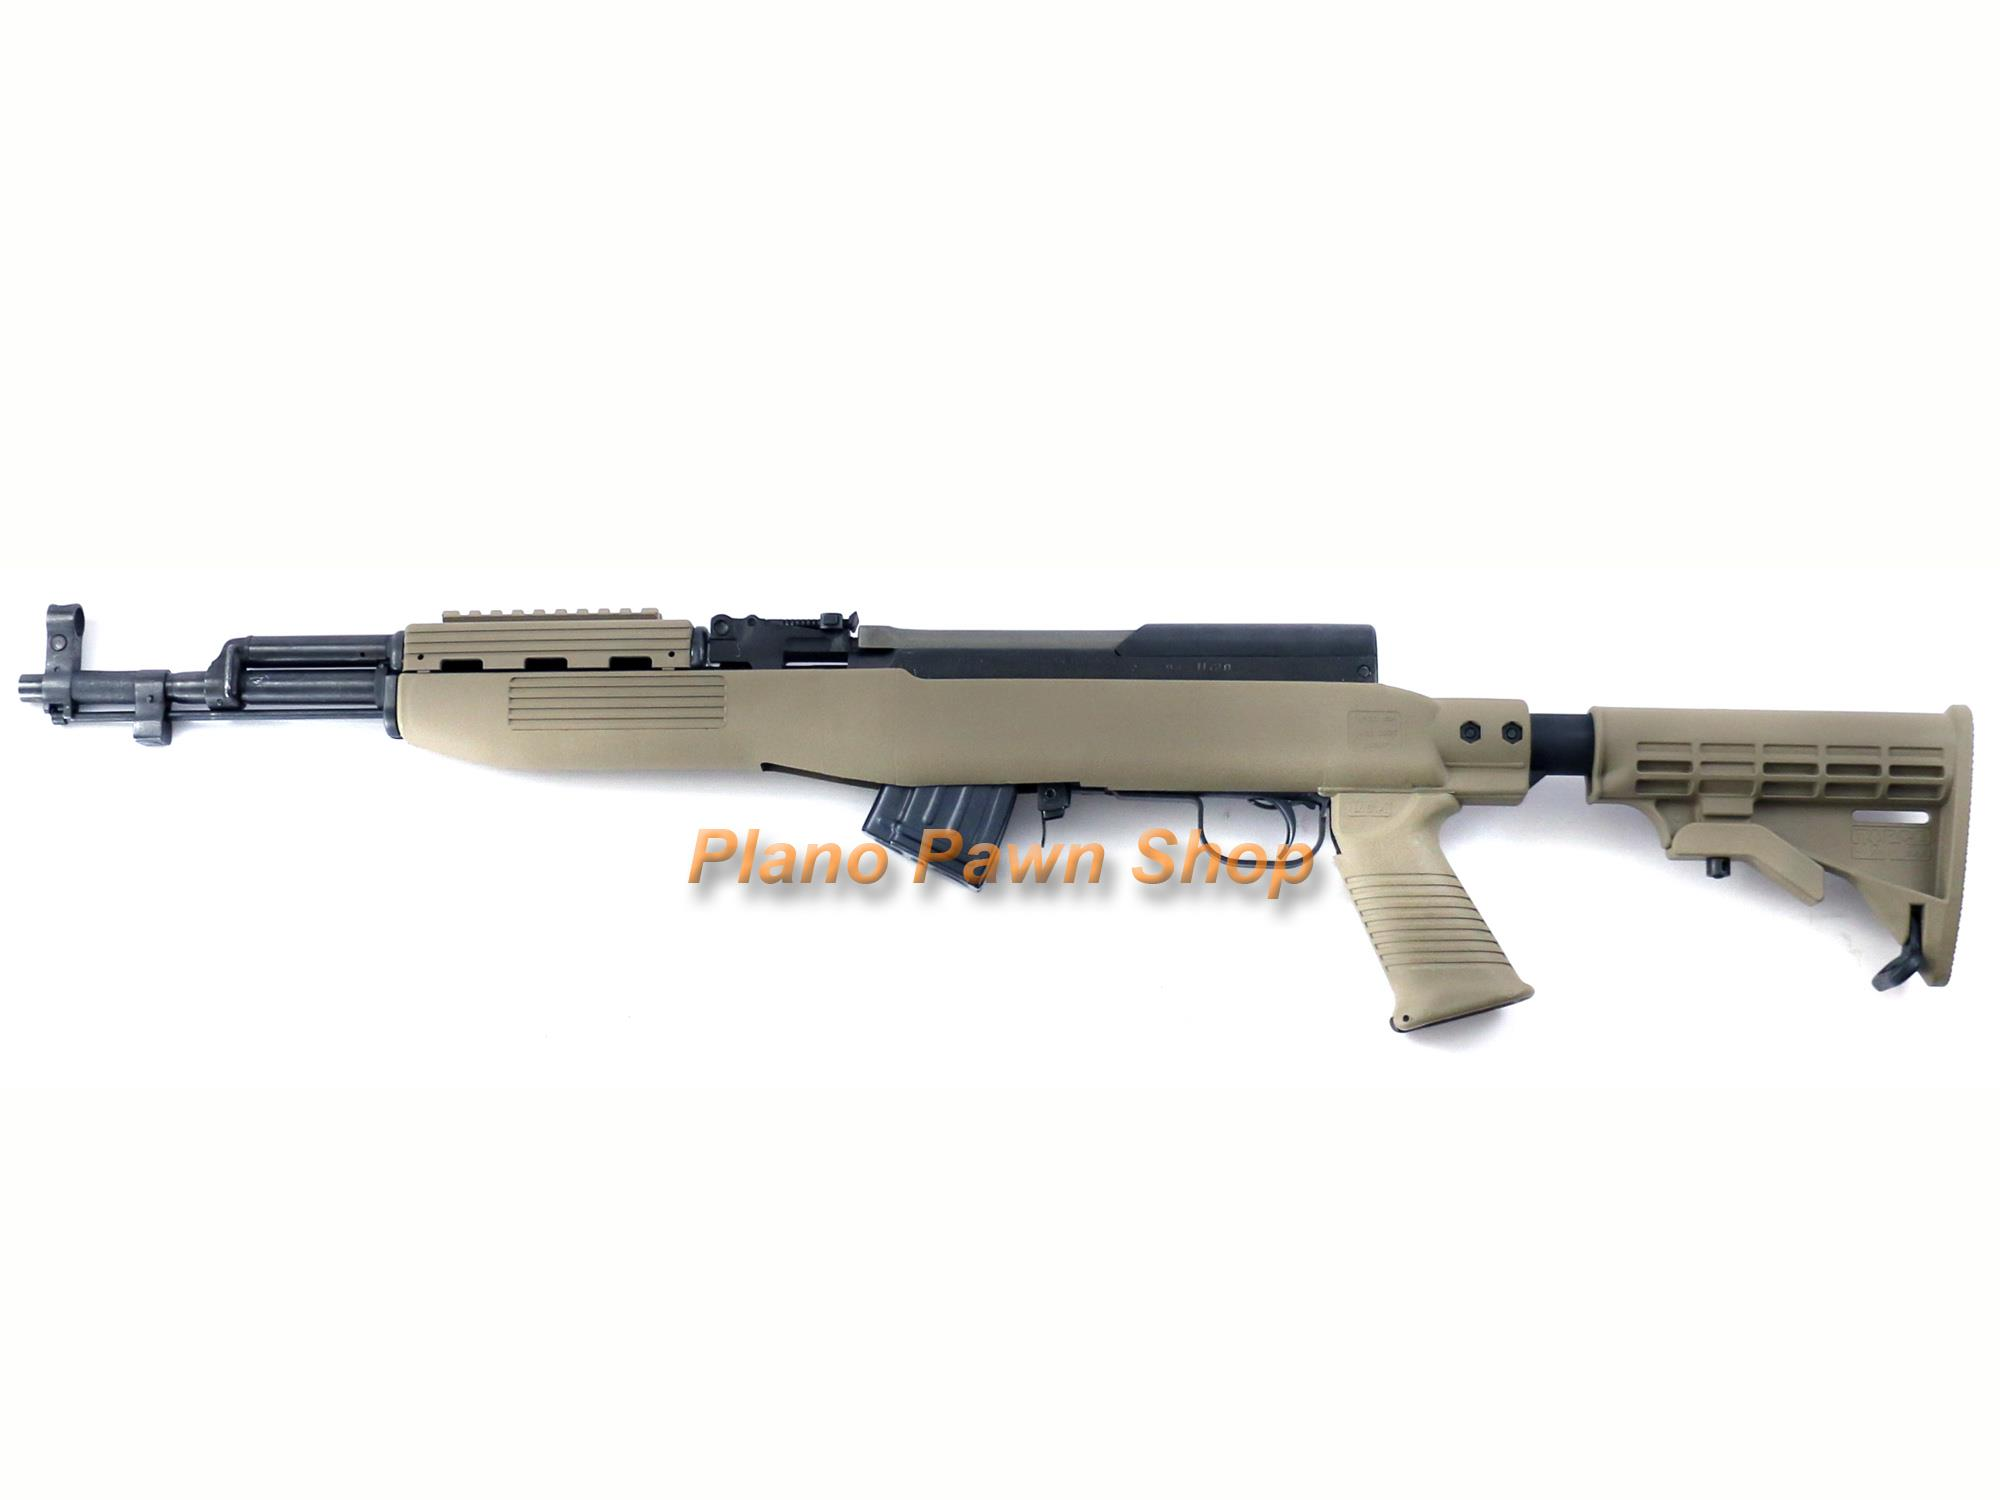 Sks T6: Tapco T6 Stock-4 Mags – Wonderful Image Gallery